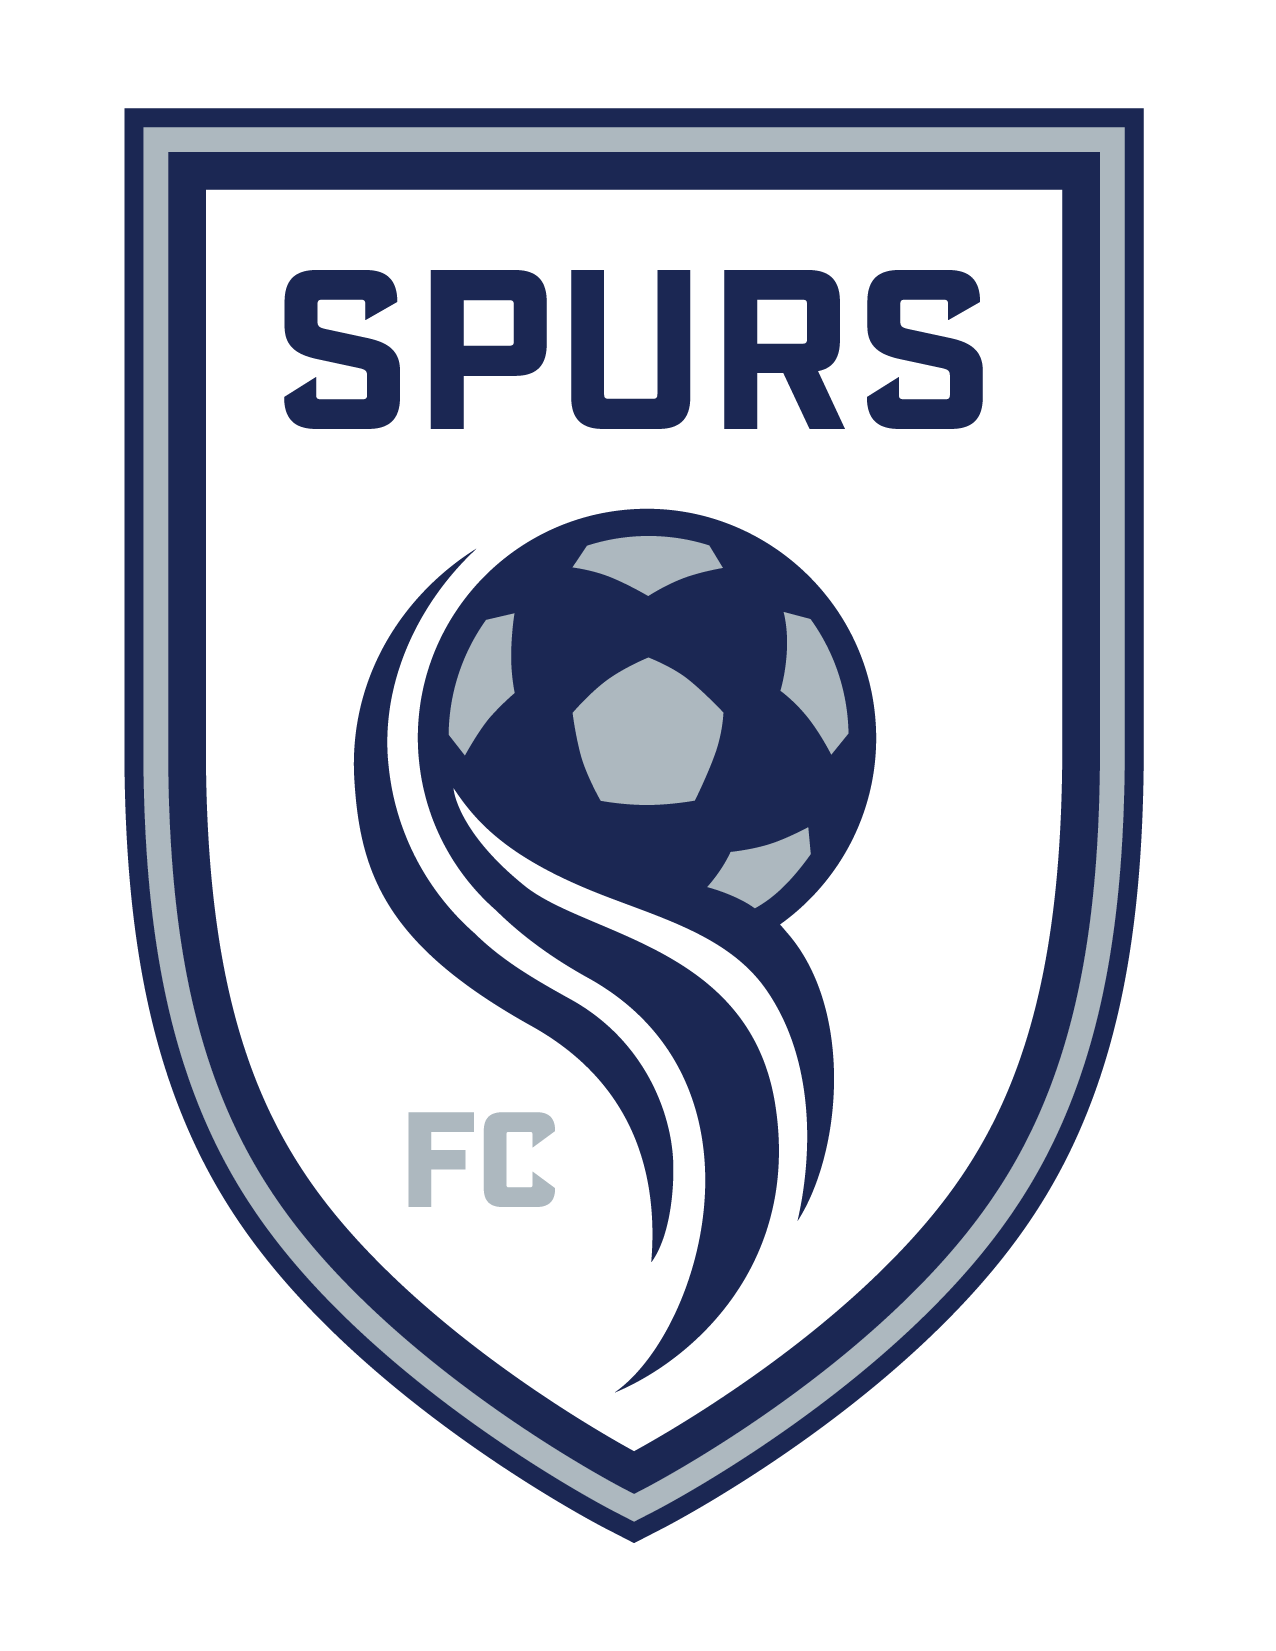 Spurs-ALL-LOGOS_js-01 (1).png